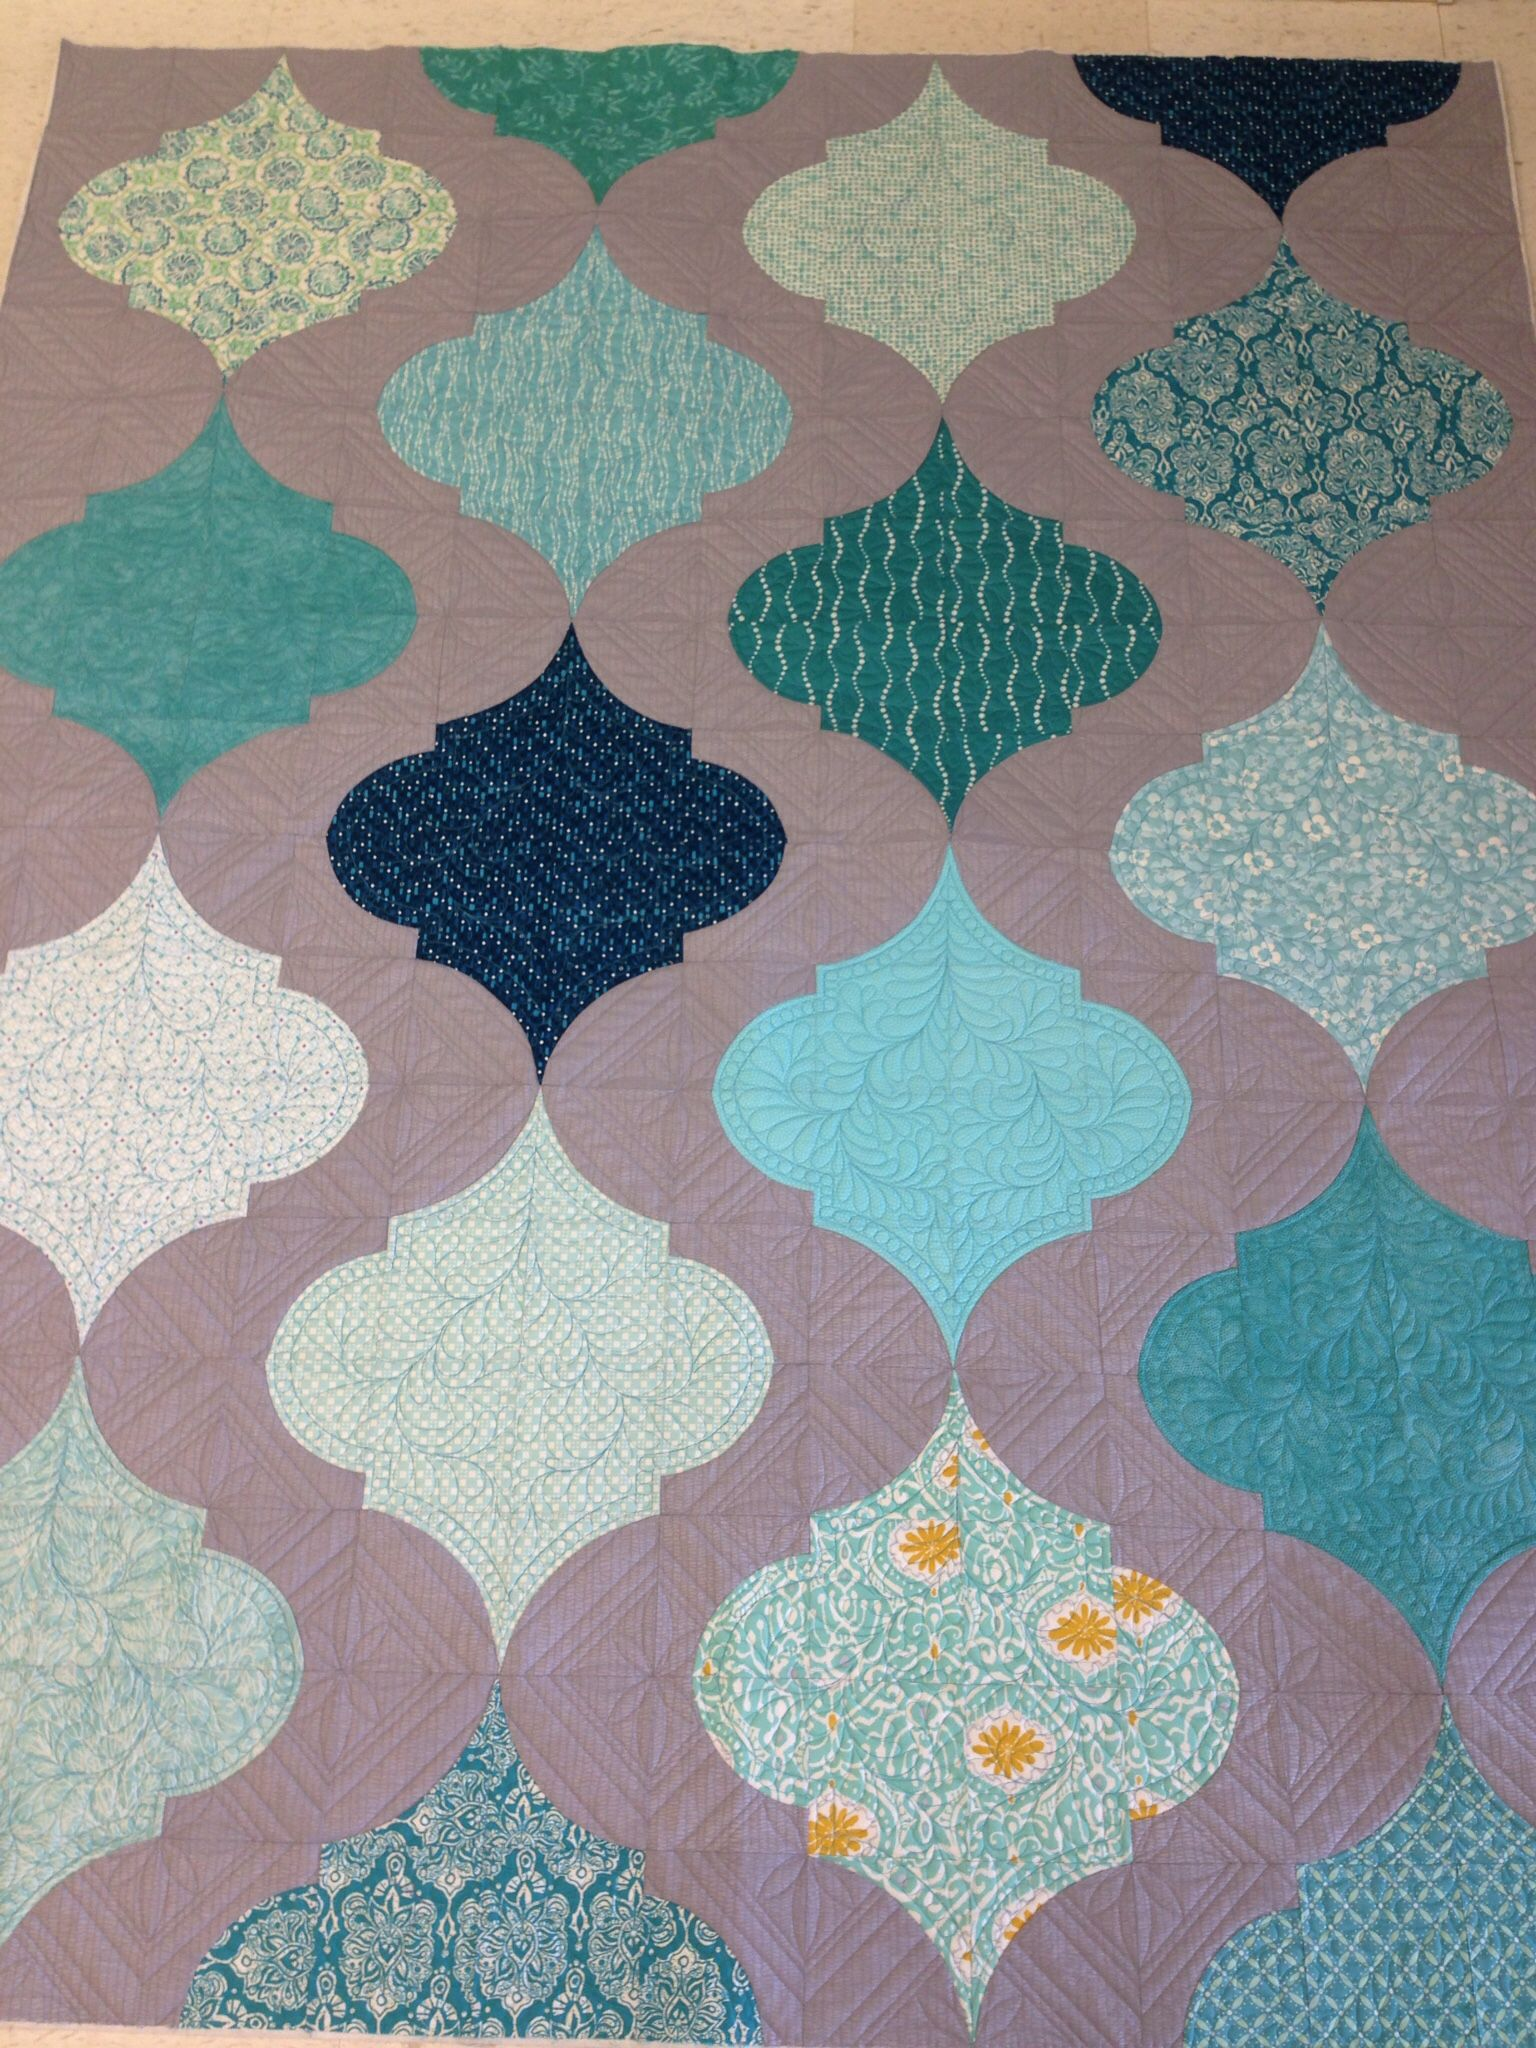 Gaslight Quilt Made By Carol Swota And Quilted By Sue